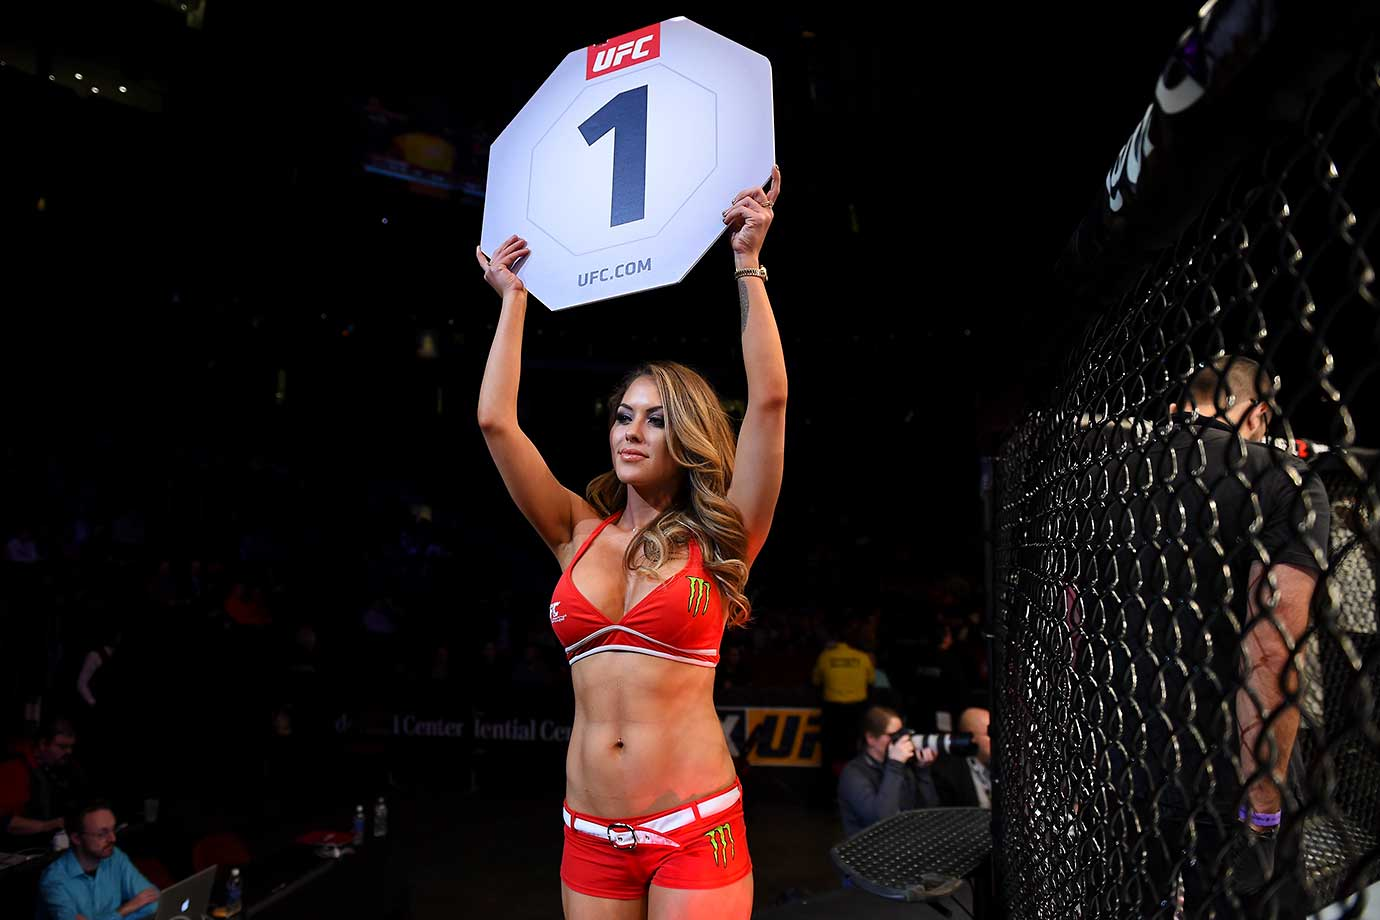 UFC Octagon Girl Brittney Palmer introduces the first round during the UFC Fight Night event at the Prudential Center in Newark, N.J.